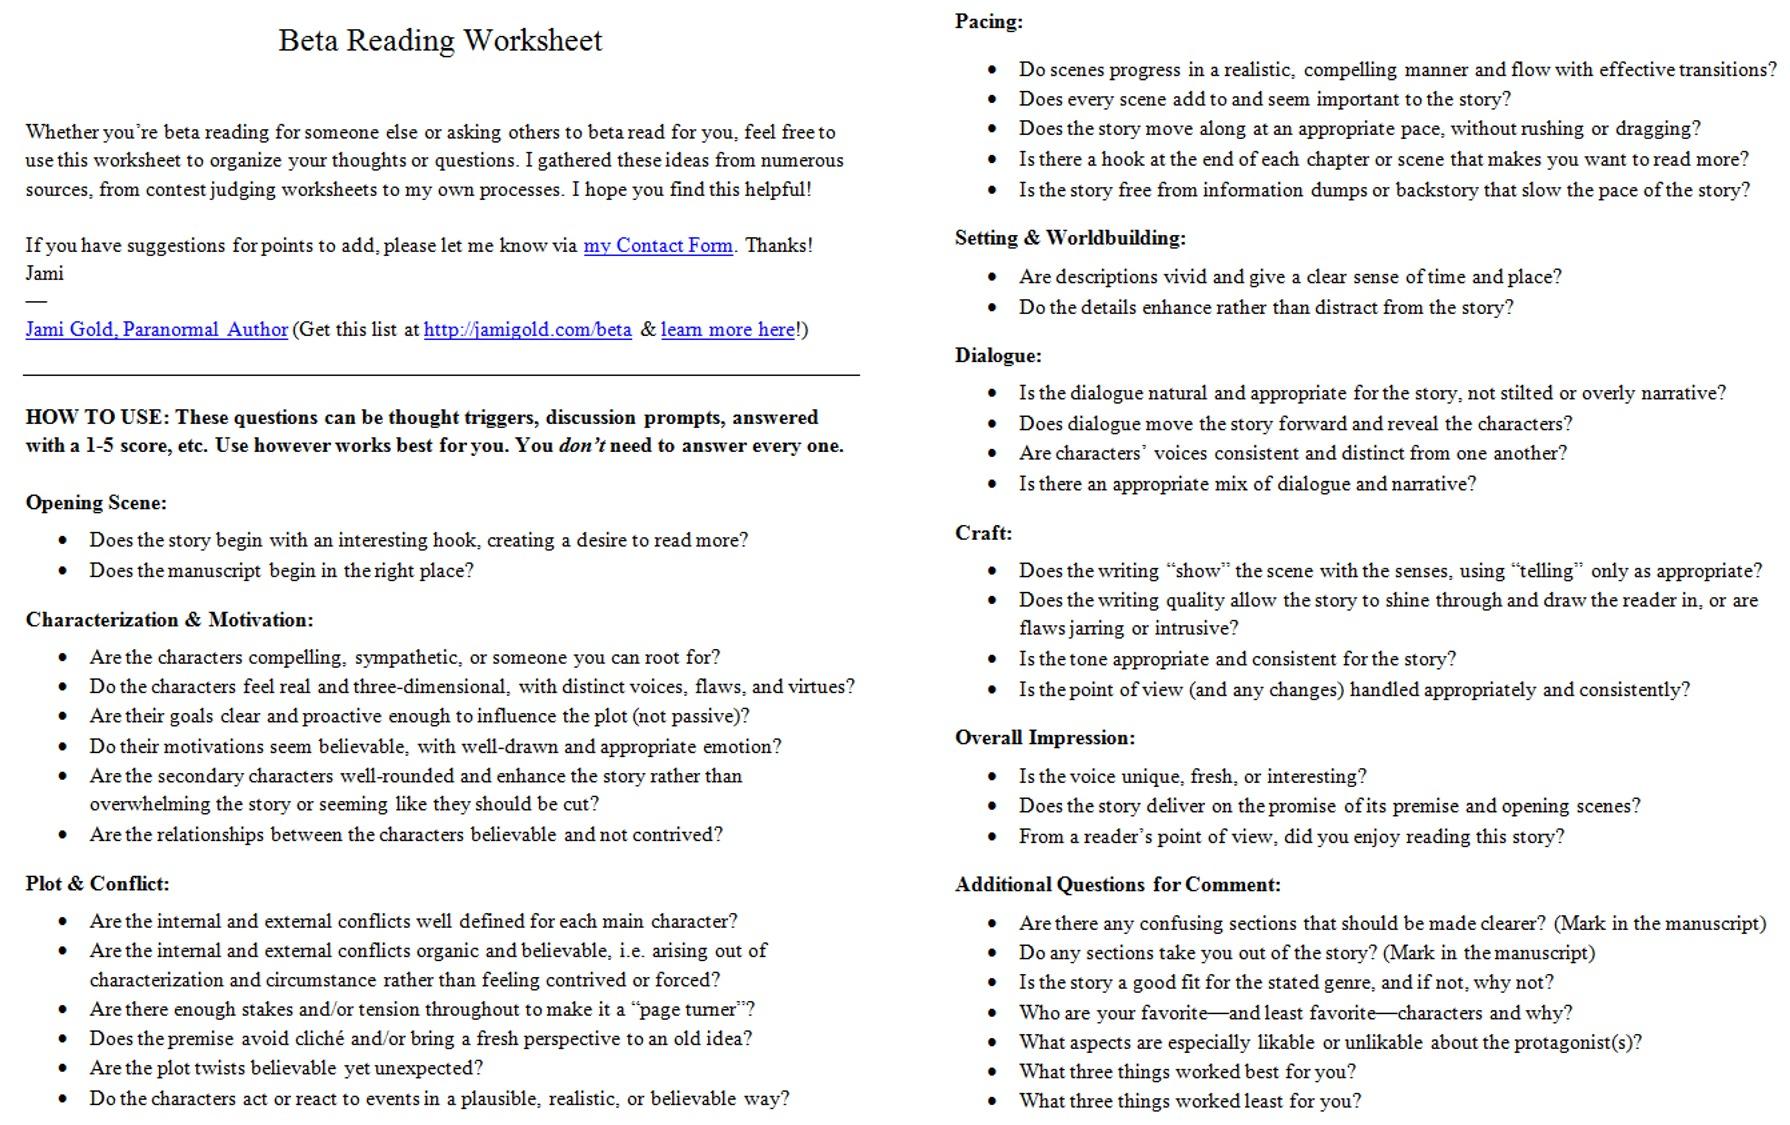 Proatmealus  Unusual Worksheets For Writers  Jami Gold Paranormal Author With Extraordinary Screen Shot Of The Twopage Beta Reading Worksheet With Breathtaking Stated And Implied Main Idea Worksheets Also Mixed Numbers To Improper Fractions Worksheet With Pictures In Addition Math Drill Multiplication Worksheets And Silent W Worksheets As Well As Super Teacher Worksheets Social Studies Additionally Ks Worksheets From Jamigoldcom With Proatmealus  Extraordinary Worksheets For Writers  Jami Gold Paranormal Author With Breathtaking Screen Shot Of The Twopage Beta Reading Worksheet And Unusual Stated And Implied Main Idea Worksheets Also Mixed Numbers To Improper Fractions Worksheet With Pictures In Addition Math Drill Multiplication Worksheets From Jamigoldcom